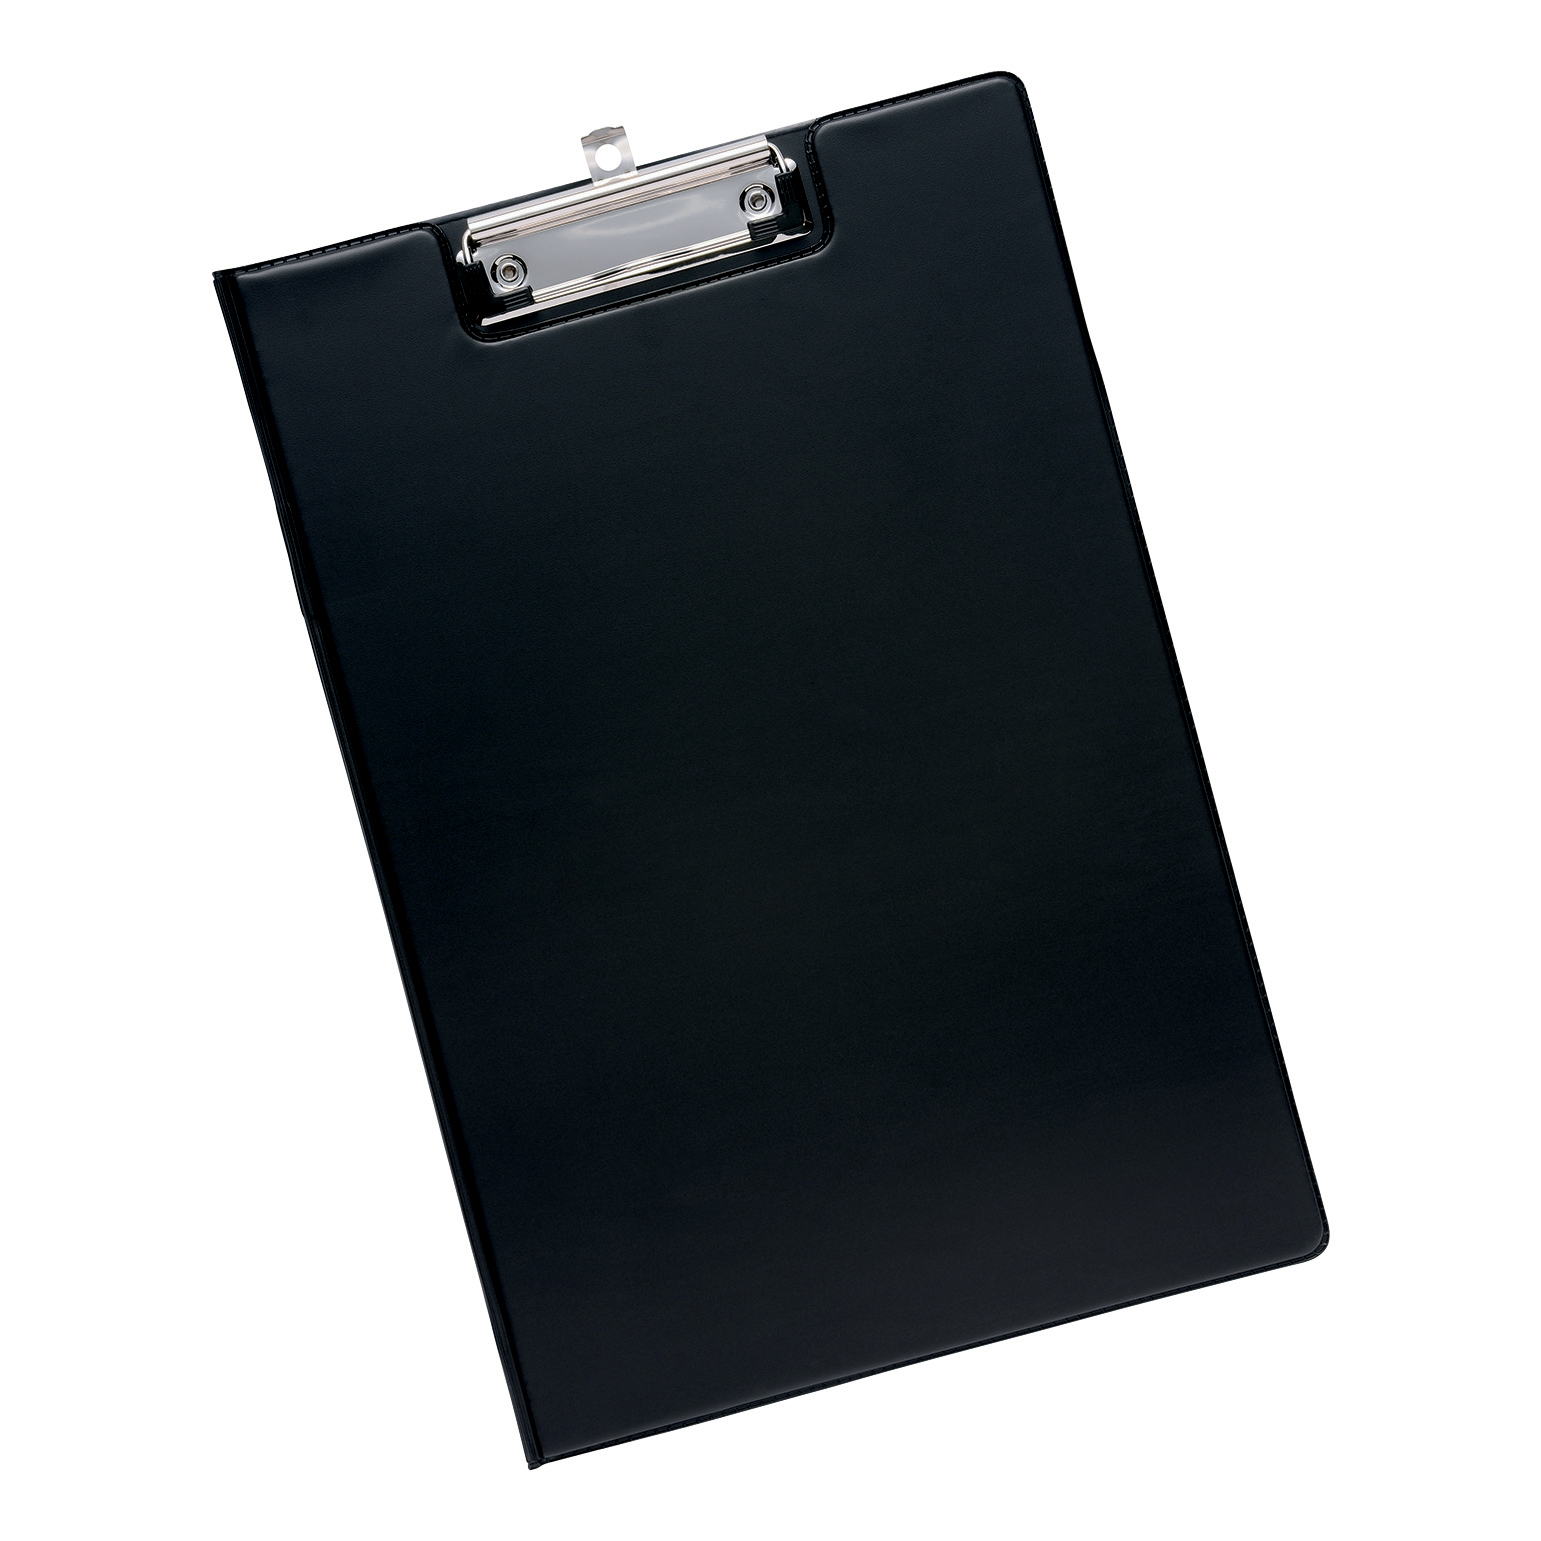 Image for 5 Star Office Fold-over Clipboard with Front Pocket Foolscap Black